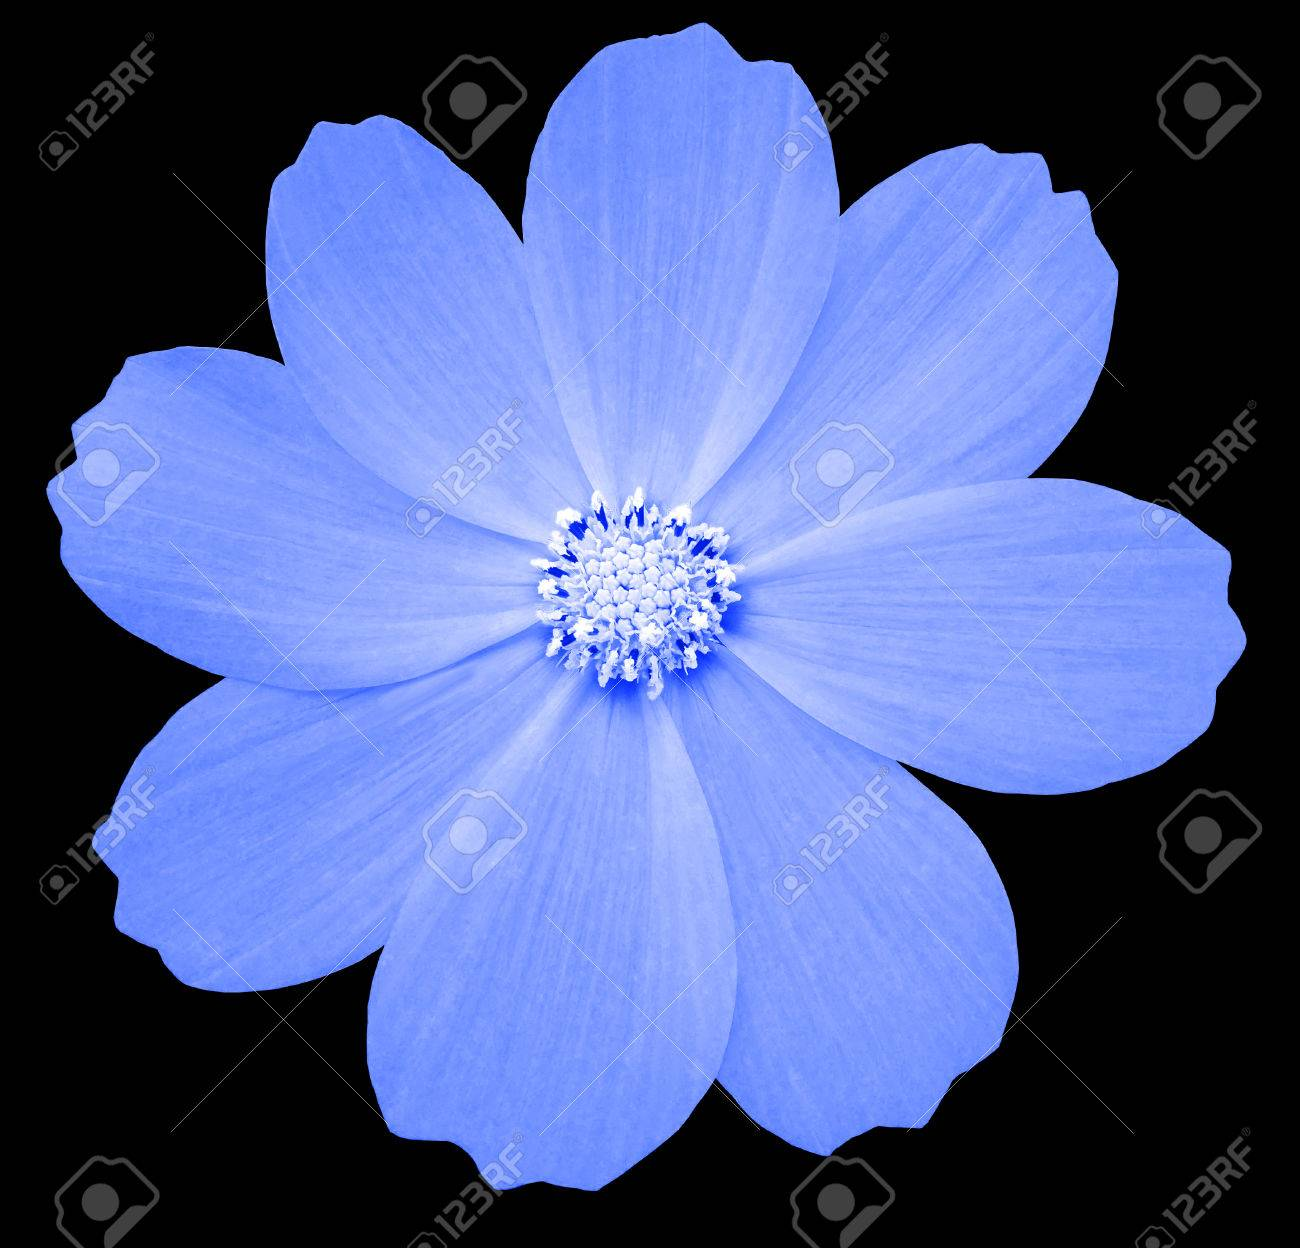 Blue Flower Primula The Black Isolated Background With Clipping